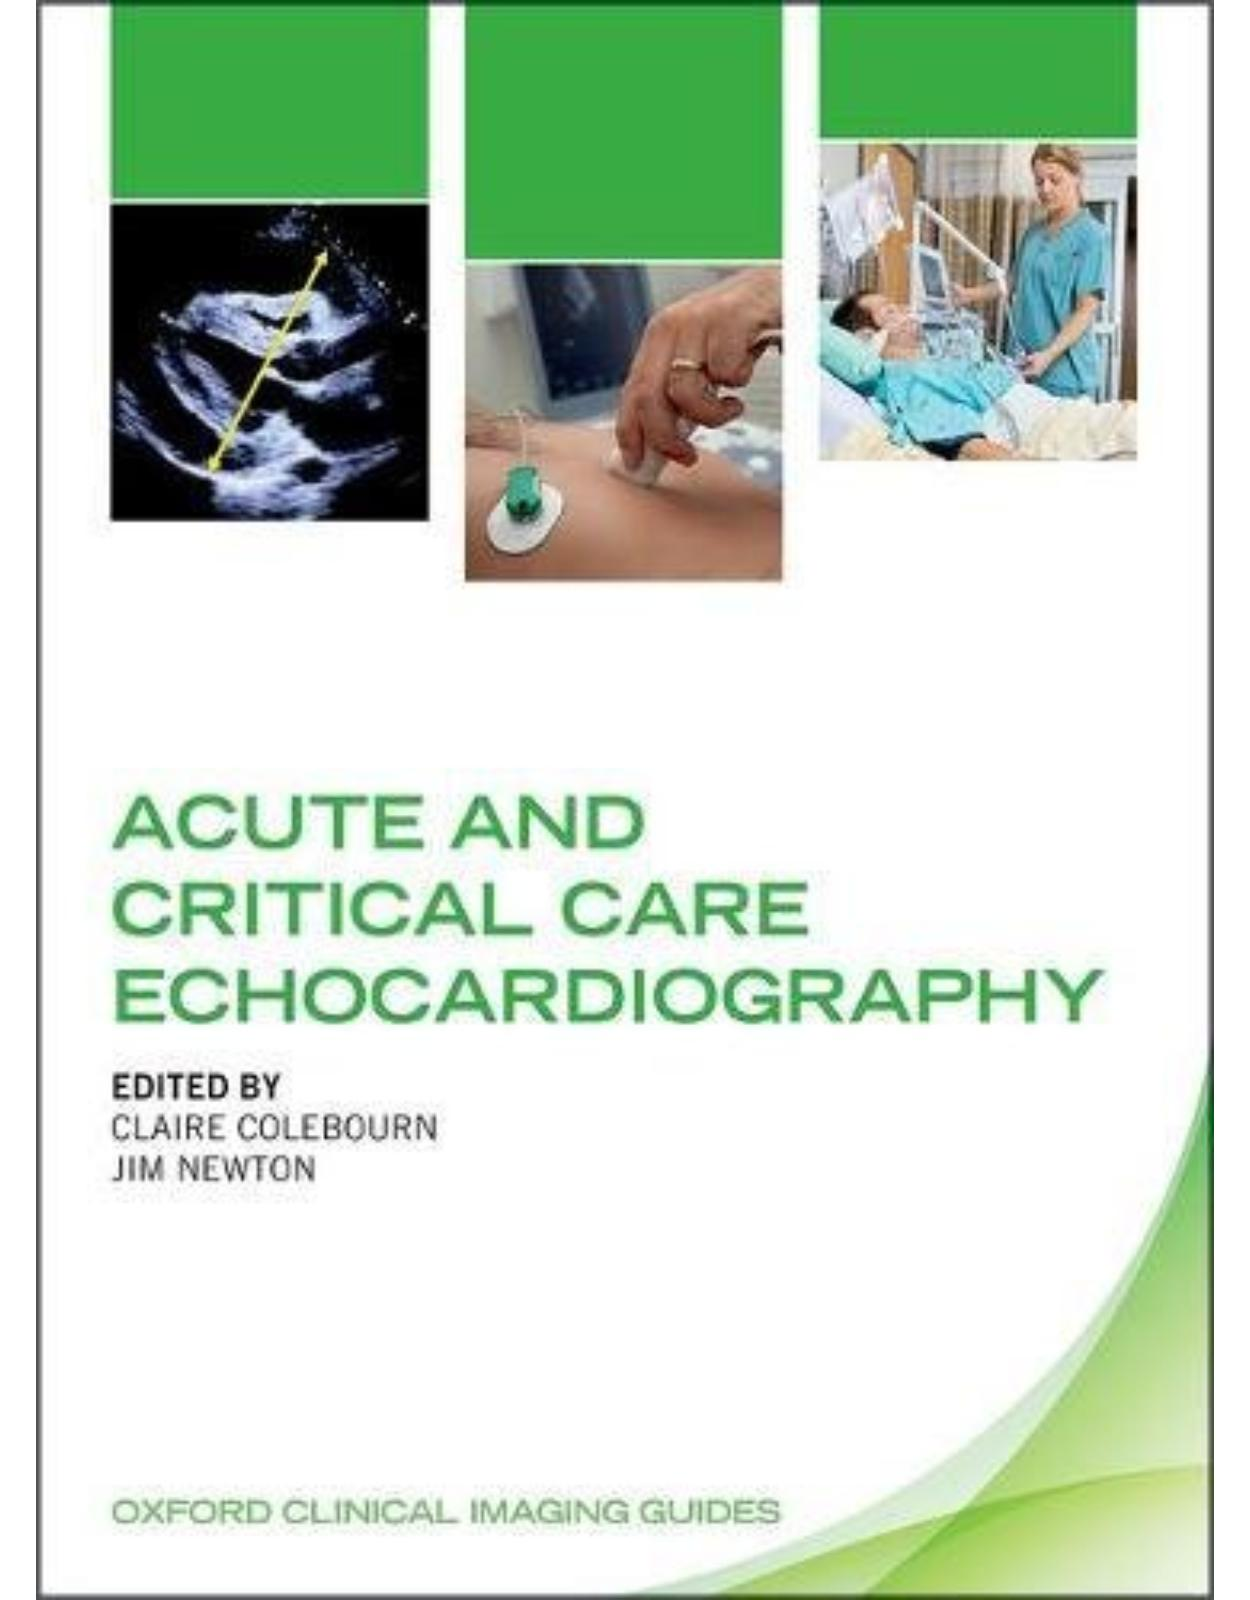 Acute and Critical Care Echocardiography (Oxford Clinical Imaging Guides)